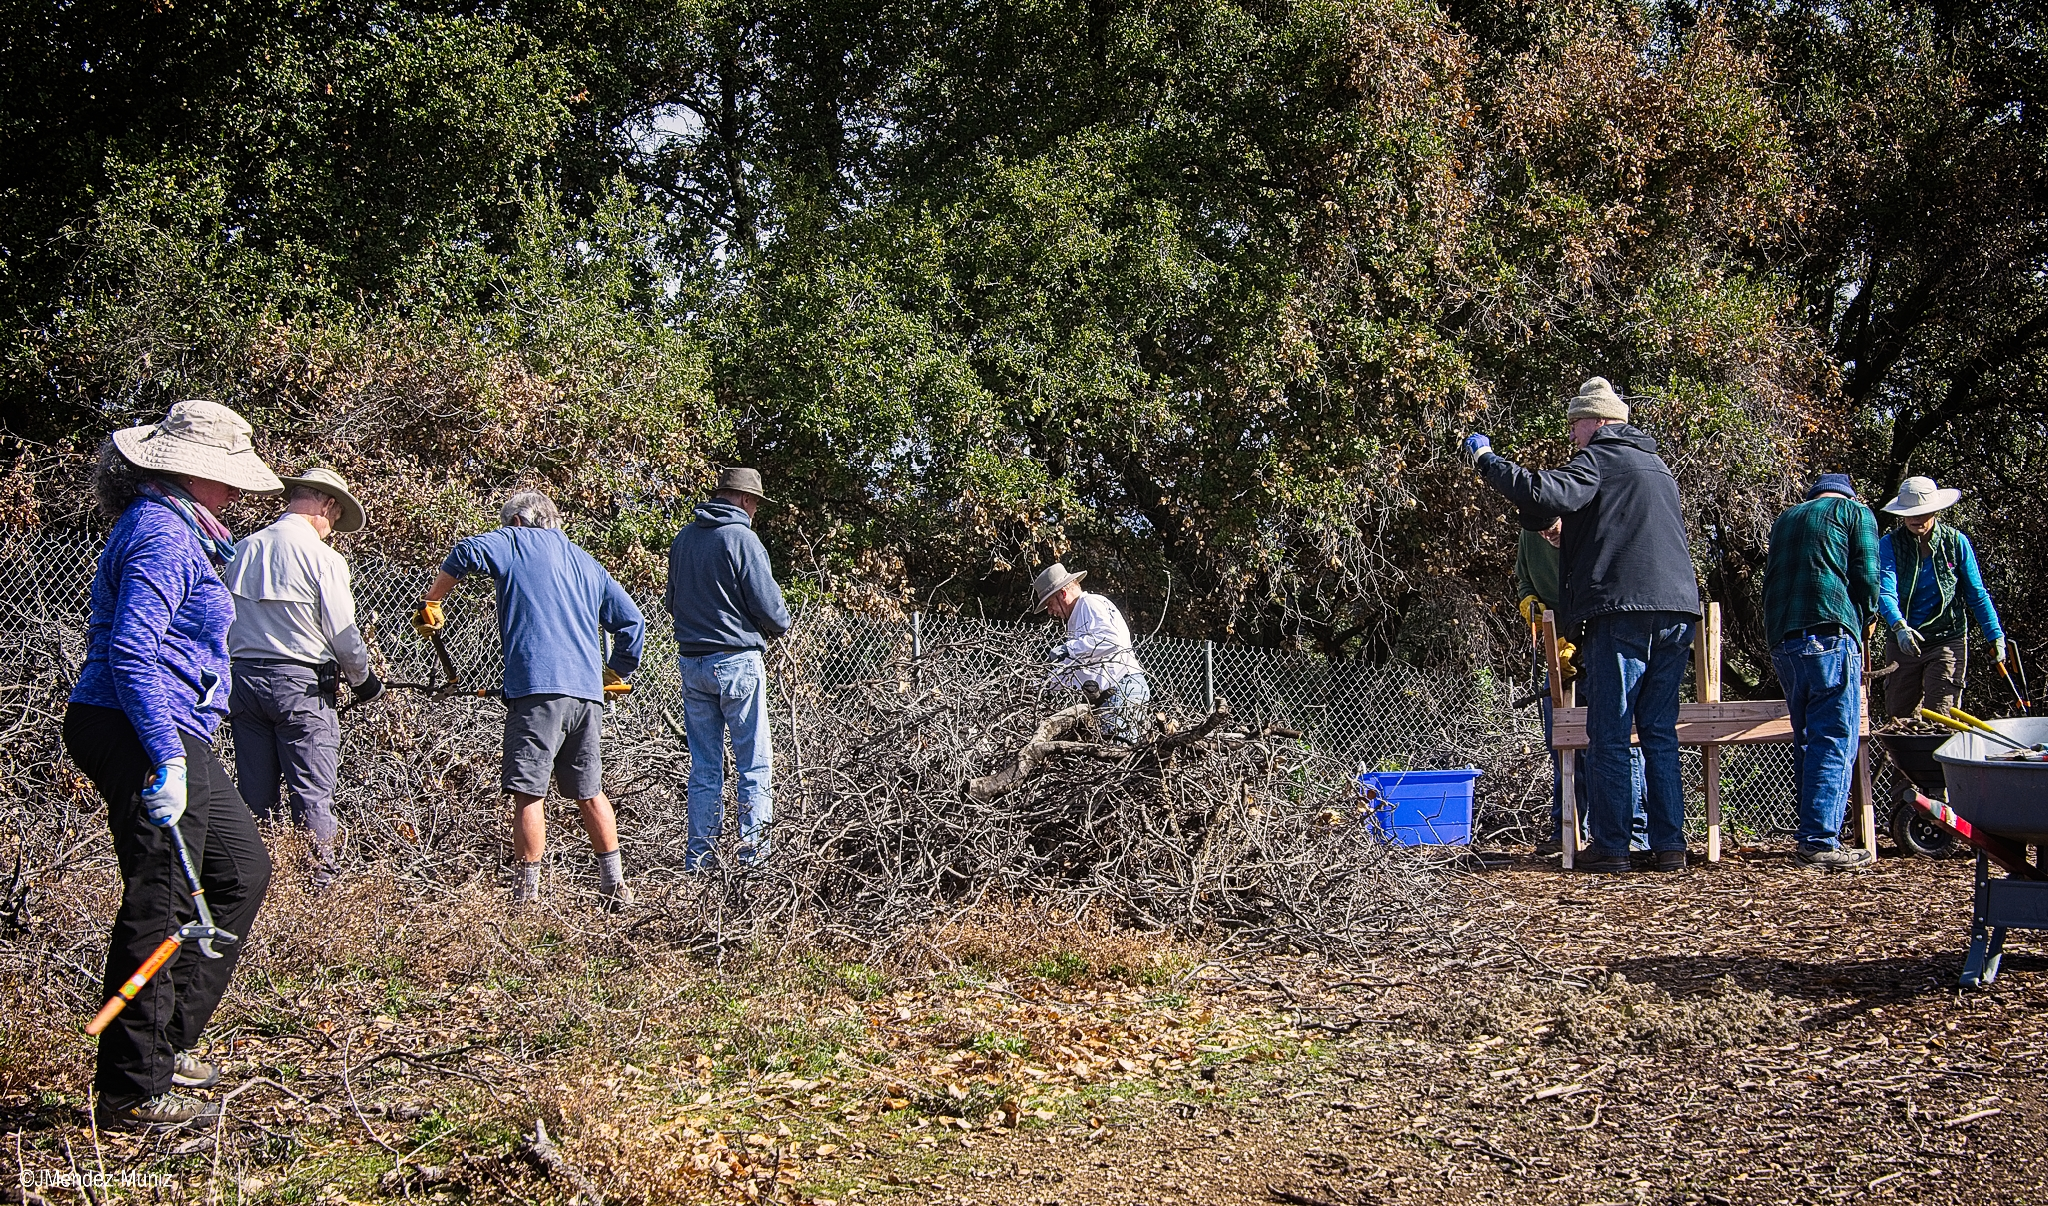 THE FALLEN LIMBS AND BRANCHES of Baba's Tree at Meher Mount are being harvested and cut into 1,200  dhuni -sized sticks to send to other Meher Baba groups for their  dhuni . (Left to right): Agnes Montano, Sam Ervin, Kyle Morrison, Jim Whedon, Jim Whitson, Fred Stankus, David Springhorn, David Trombley, and Kristina Somma. (Photo: Juan Mendez, January 12, 2019)